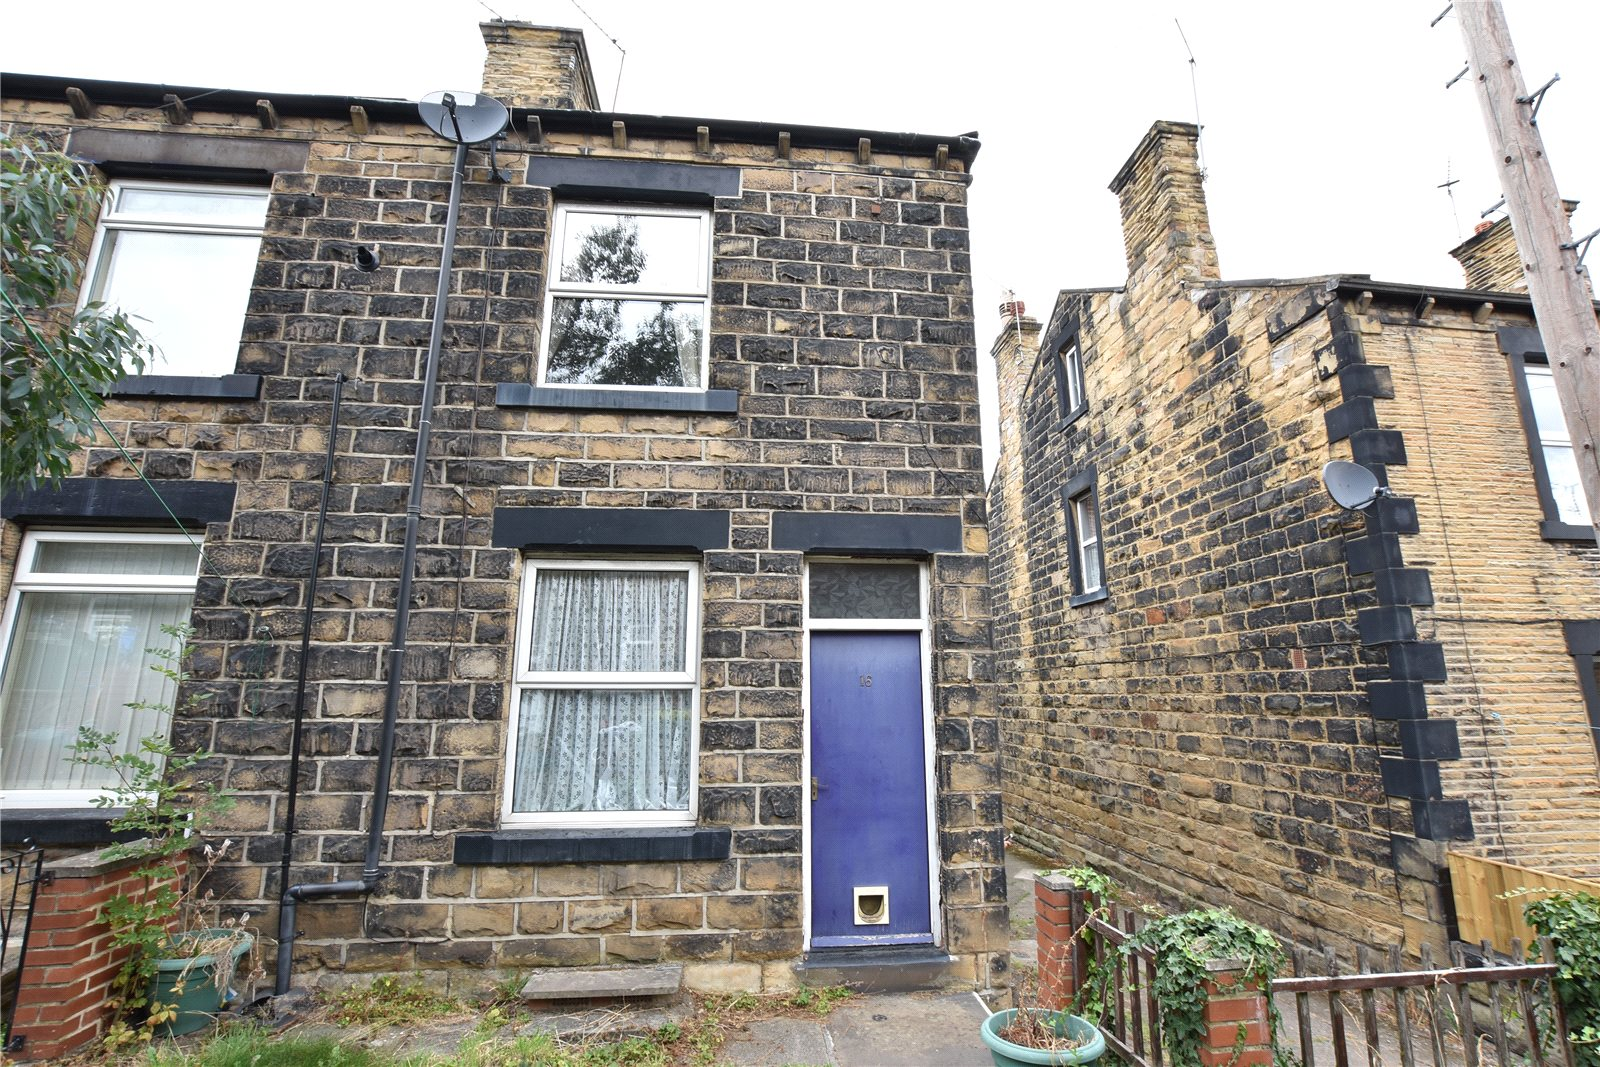 property for sale in Morley semi detached home, exterior frontage, blue front door